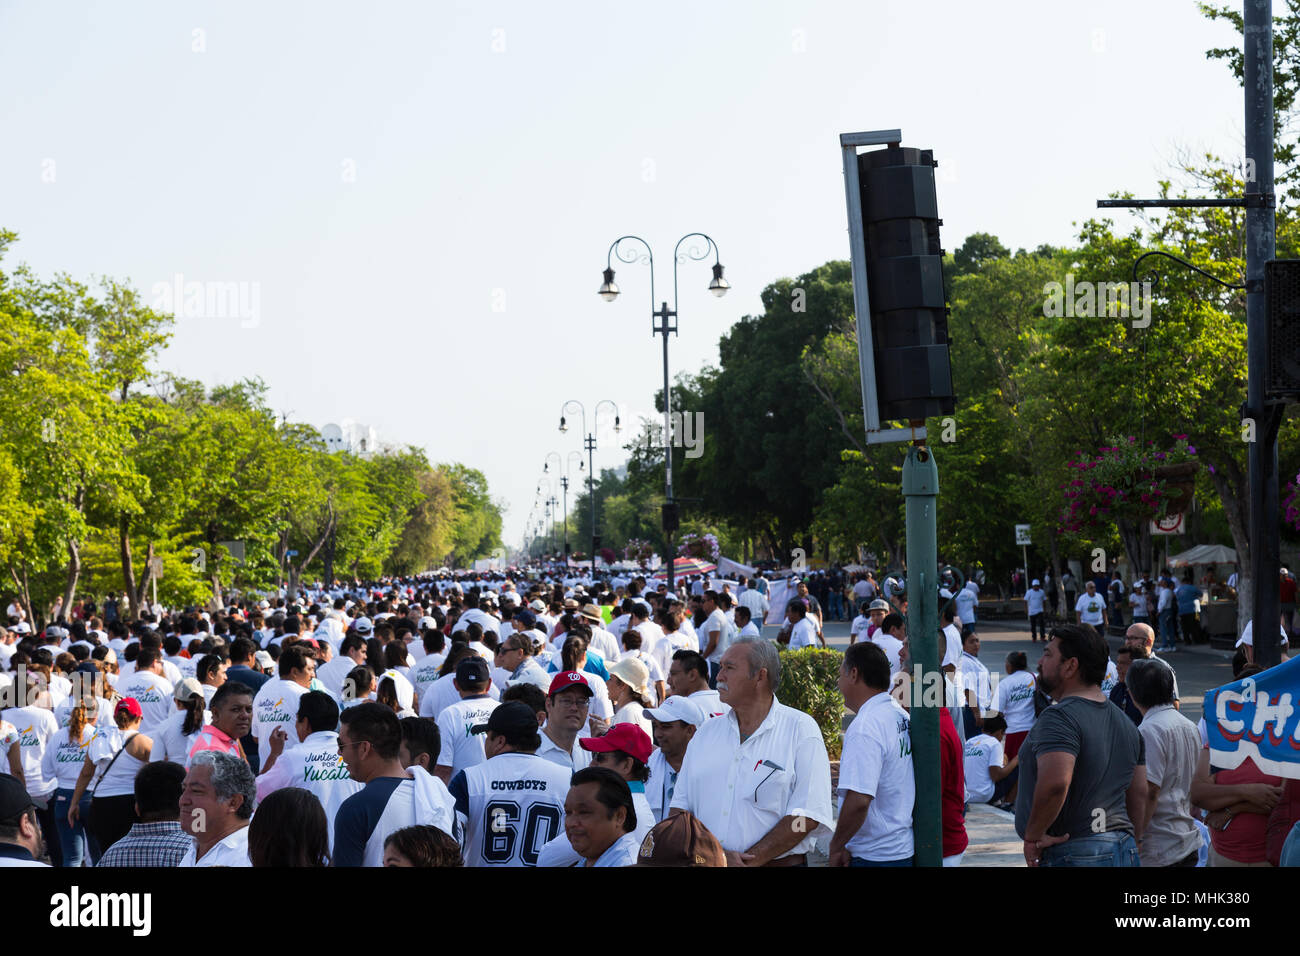 A large group of people celebrating the International Worker's Day on May 1st in Mérida Yucatán México. - Stock Image